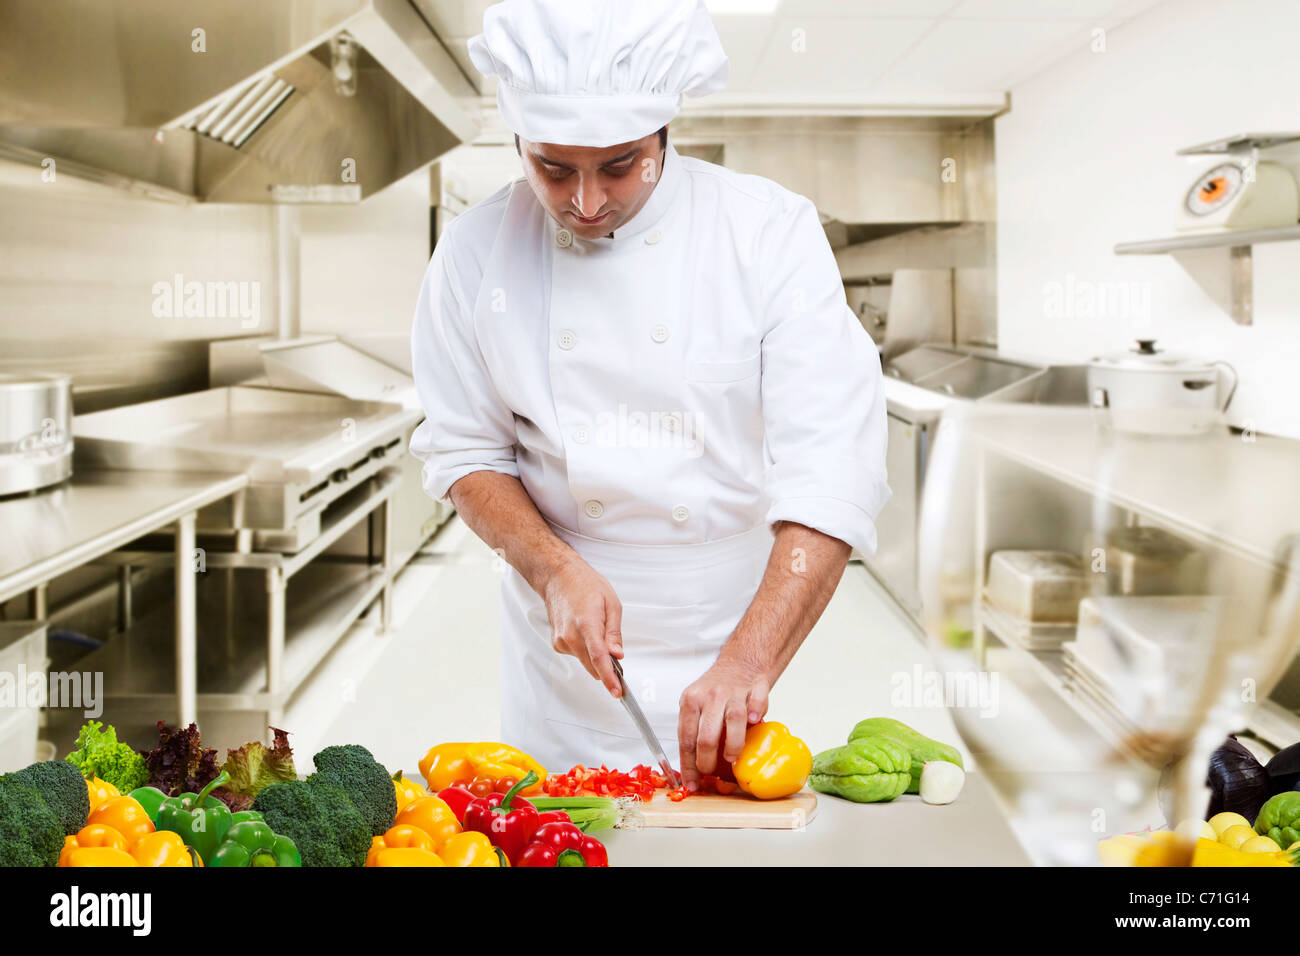 Chef cutting vegetables in the kitchen Stock Photo: 38757856 - Alamy